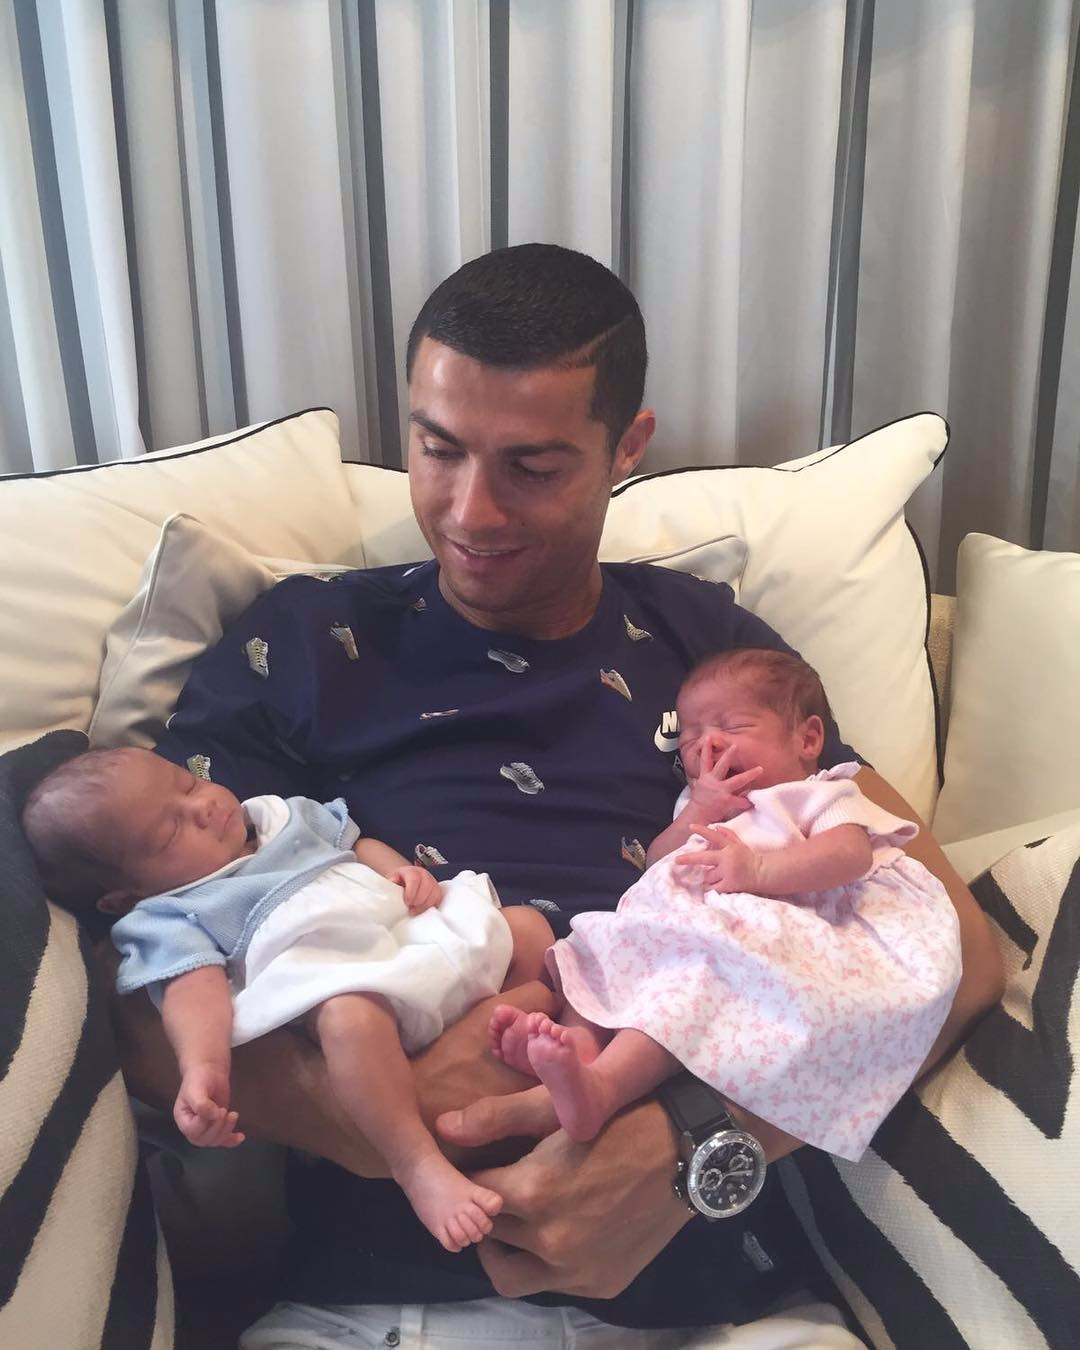 Cristiano Ronaldo holds his babies while sitting at a sofa.